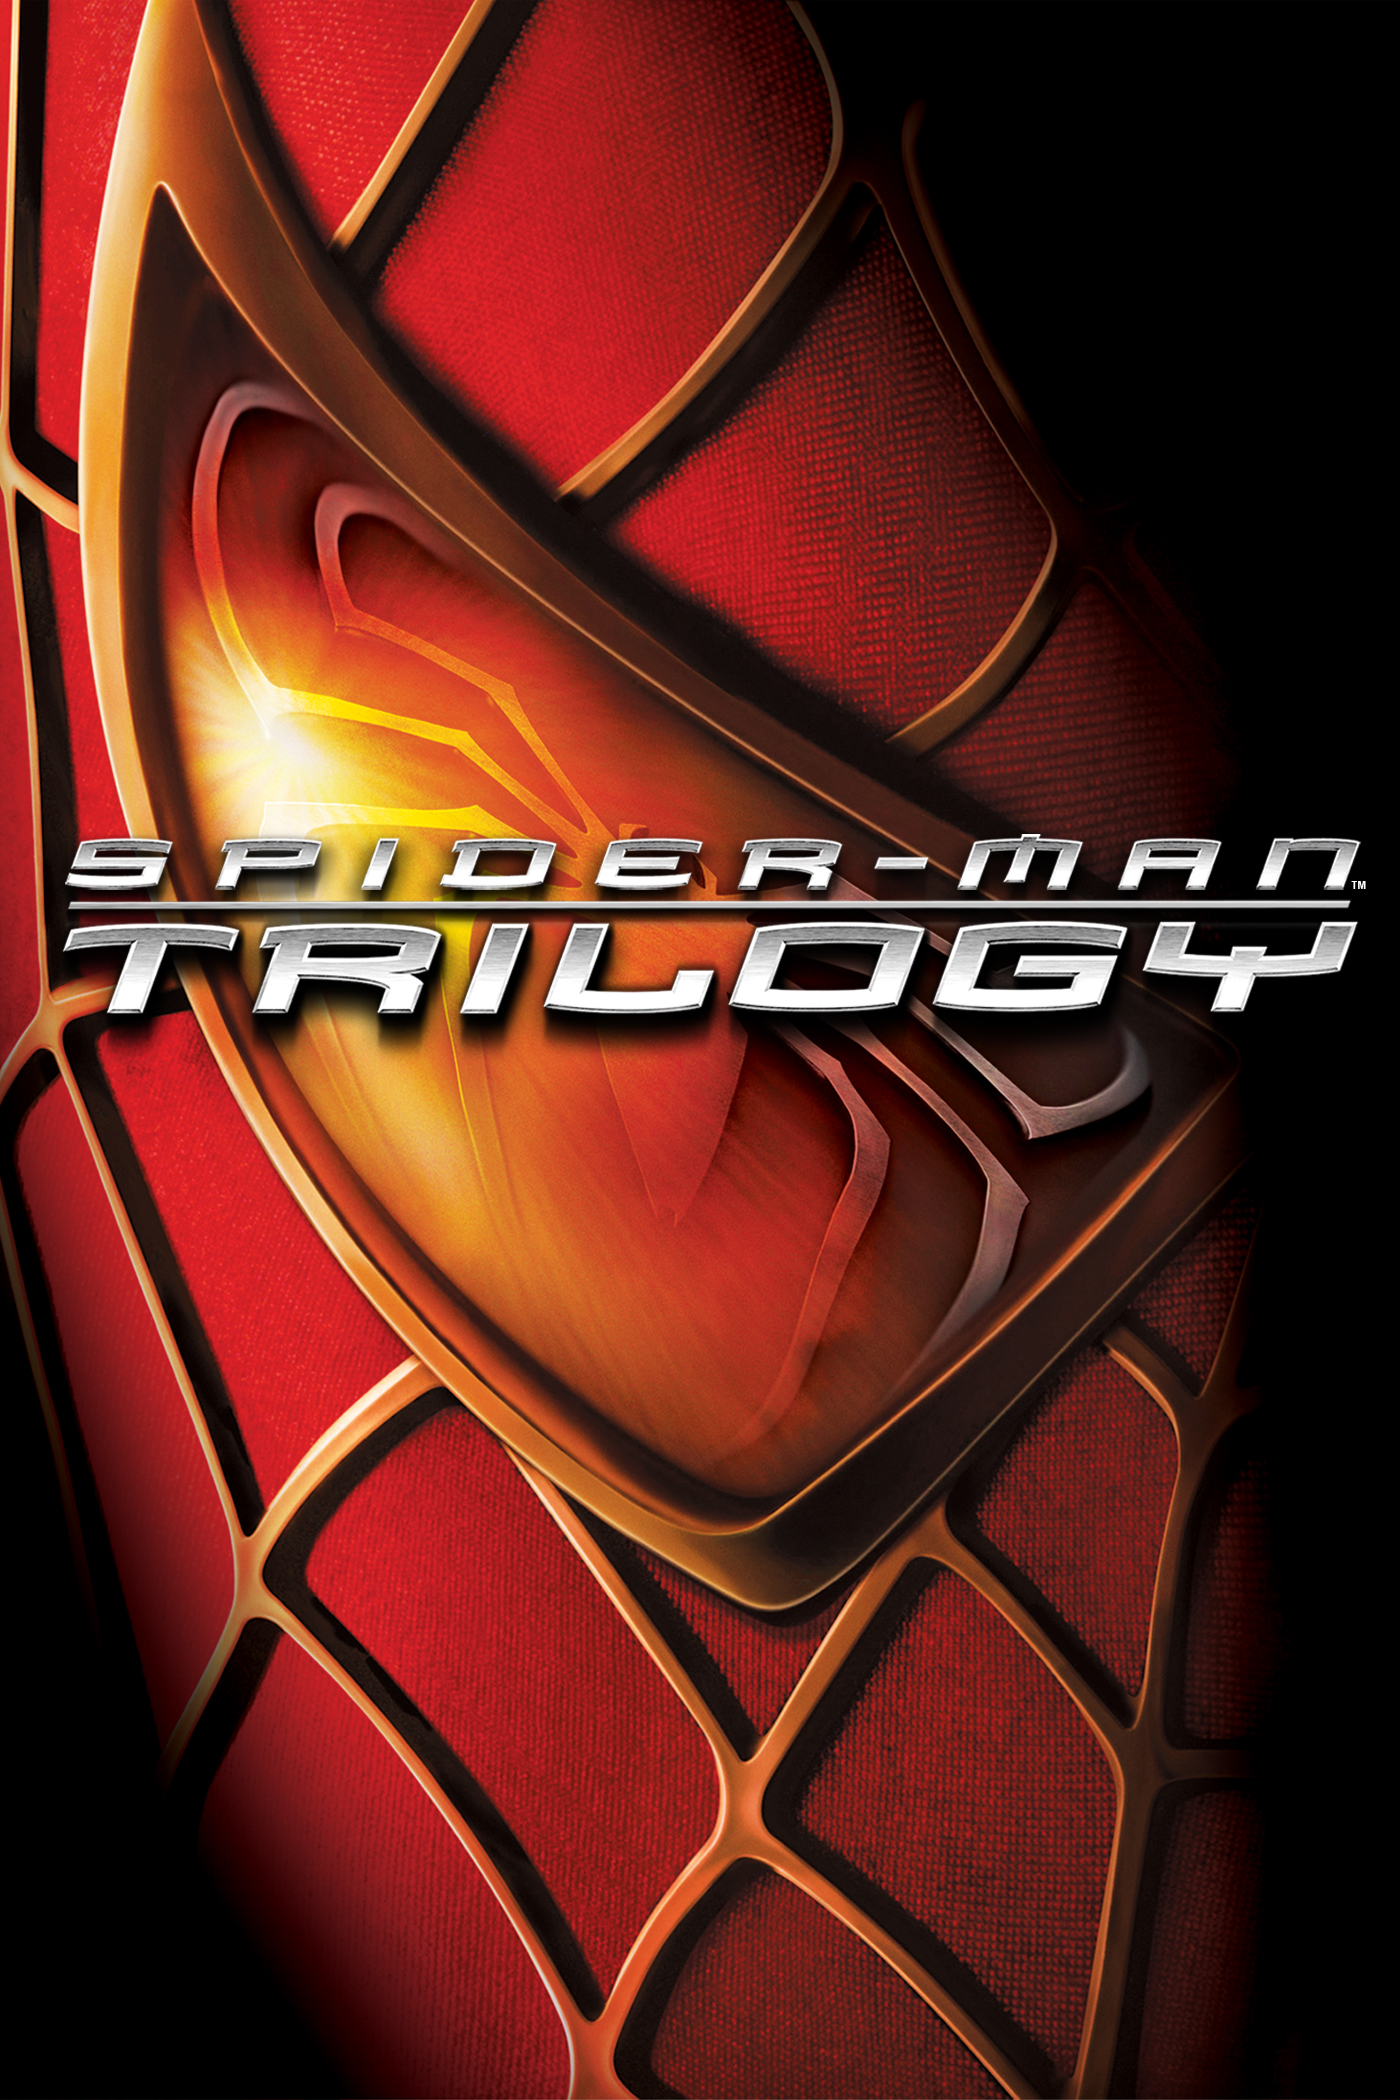 Spider-man™ Trilogy